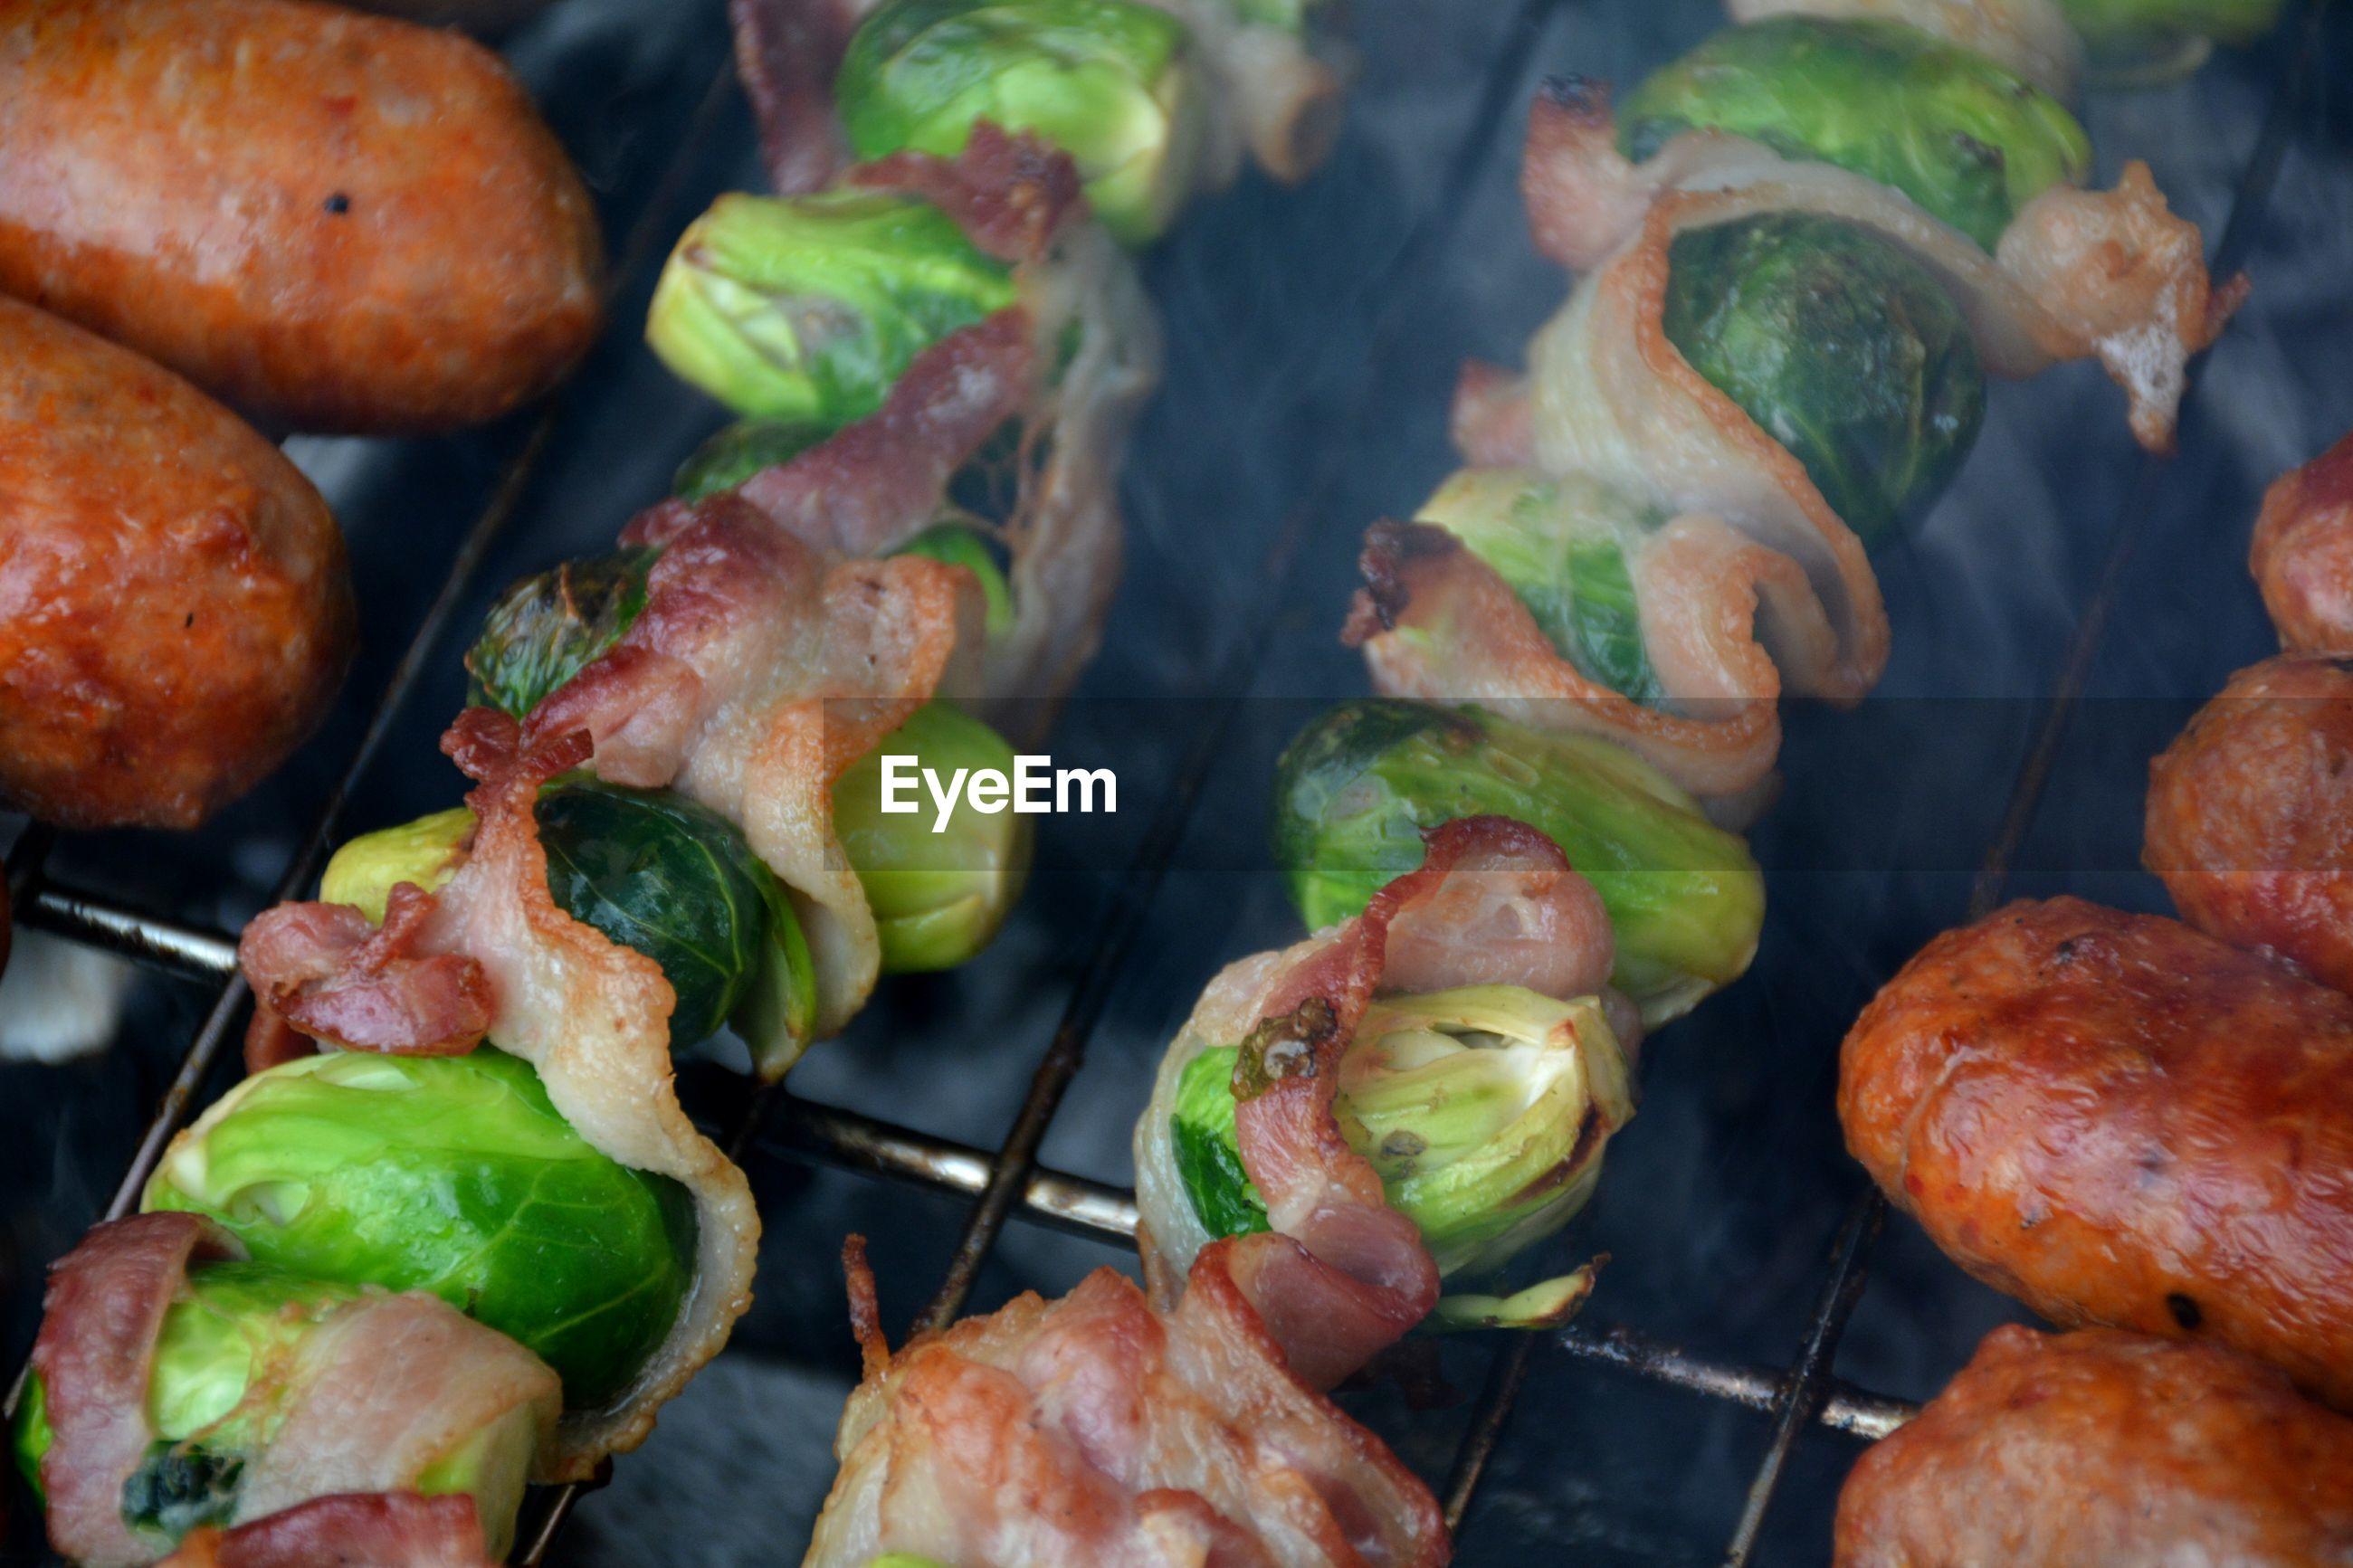 High angle view of meat and vegetables on barbecue grill